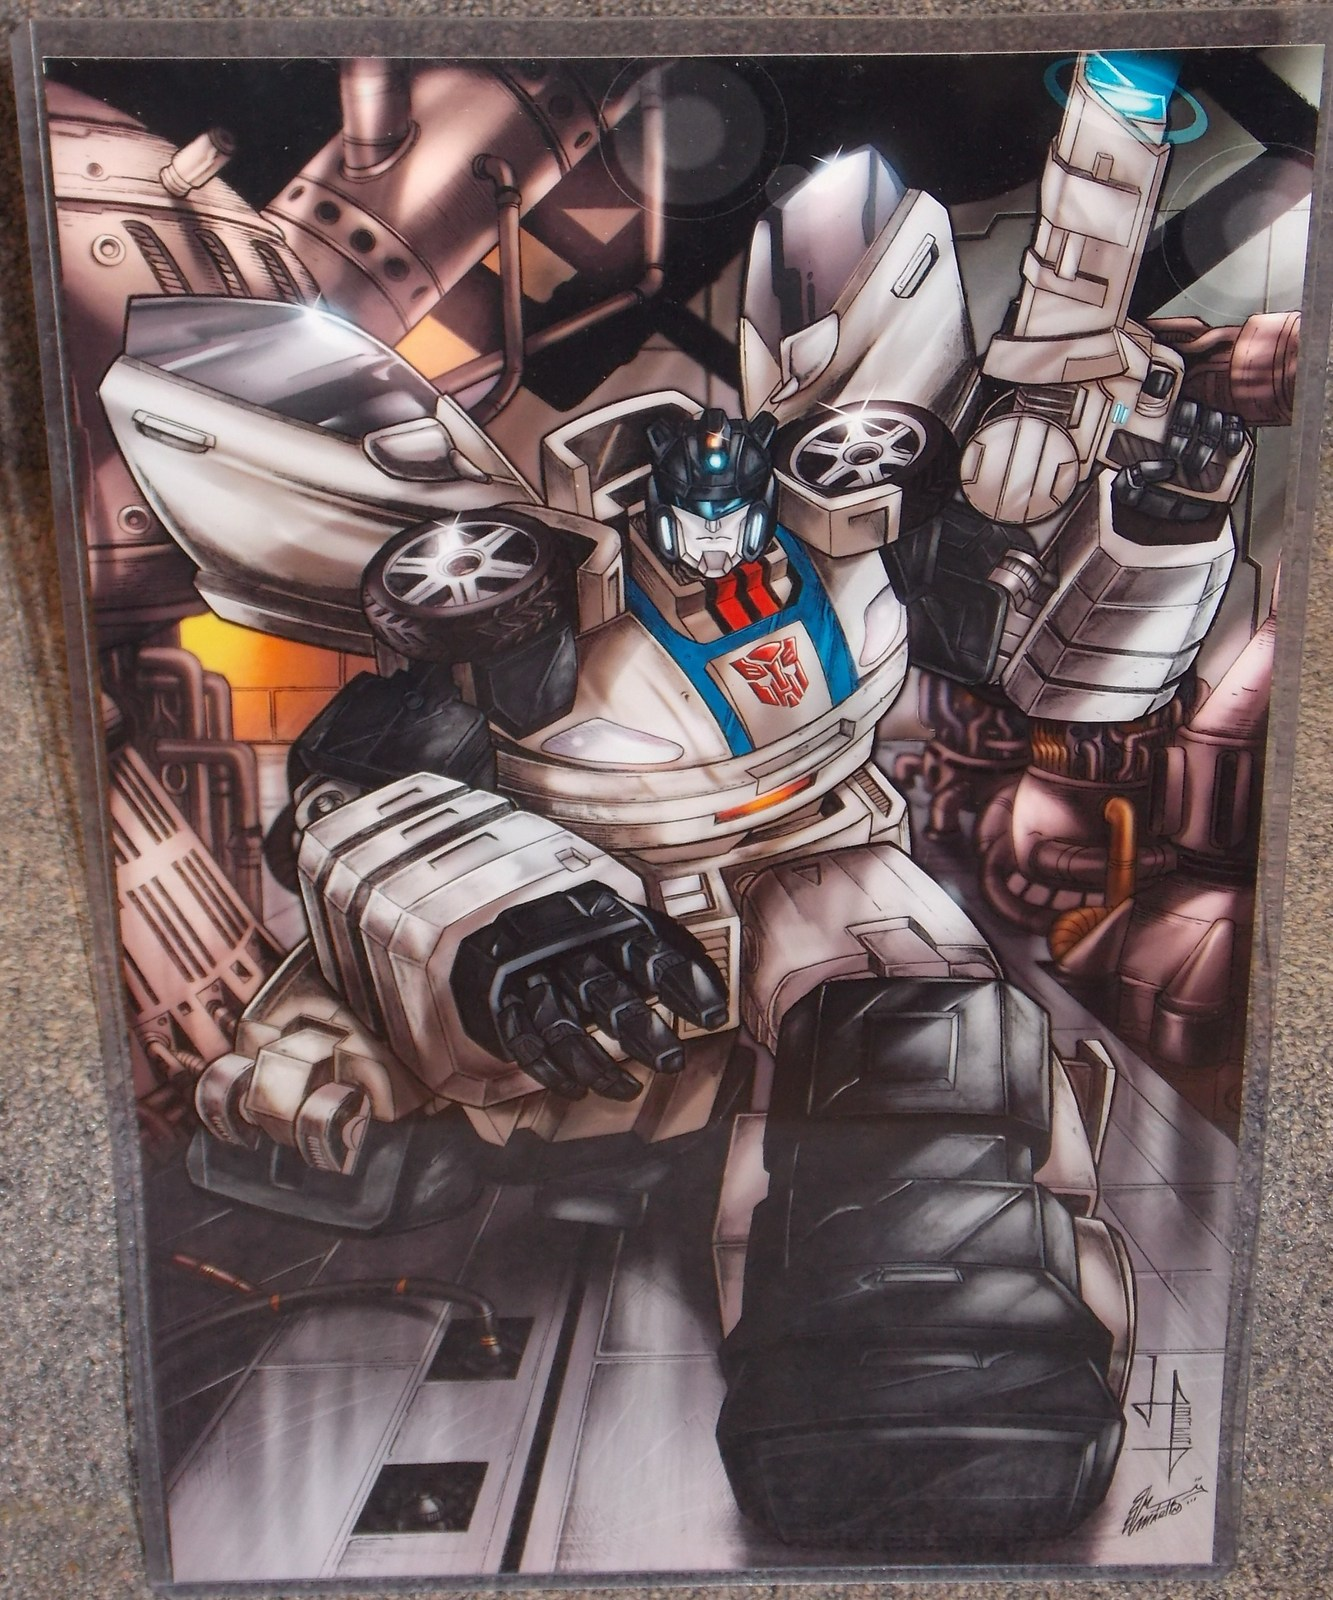 Primary image for Transformers Jazz Glossy Print 11 x 17 In Hard Plastic Sleeve